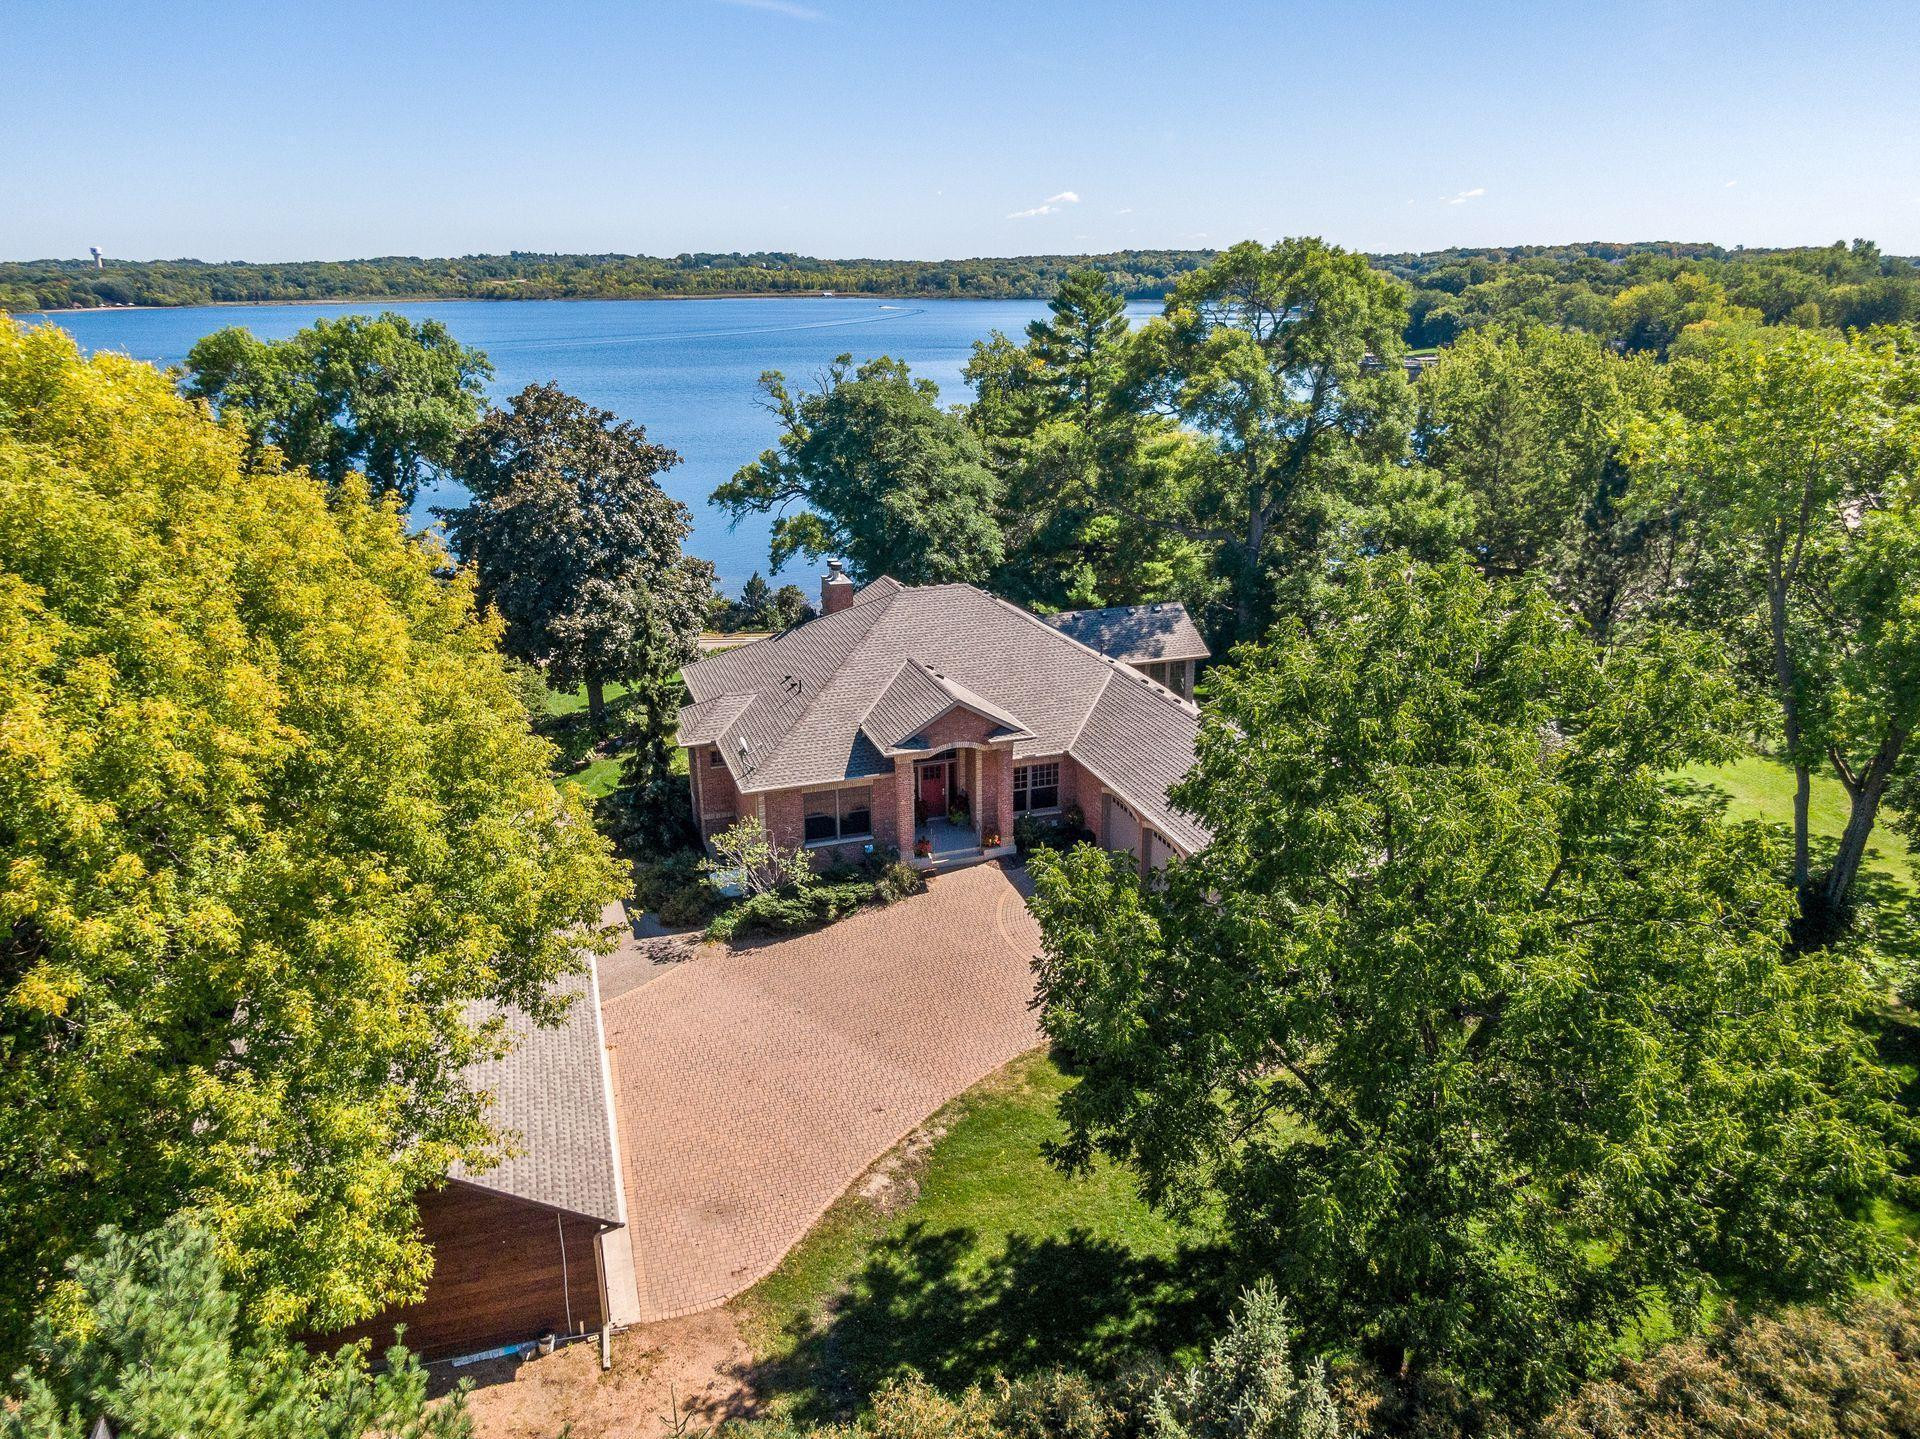 Surrounded by mature trees and nestled on a private lot, this custom built home is a stunning in-town retreat on the shores of Lake Minnewashta.